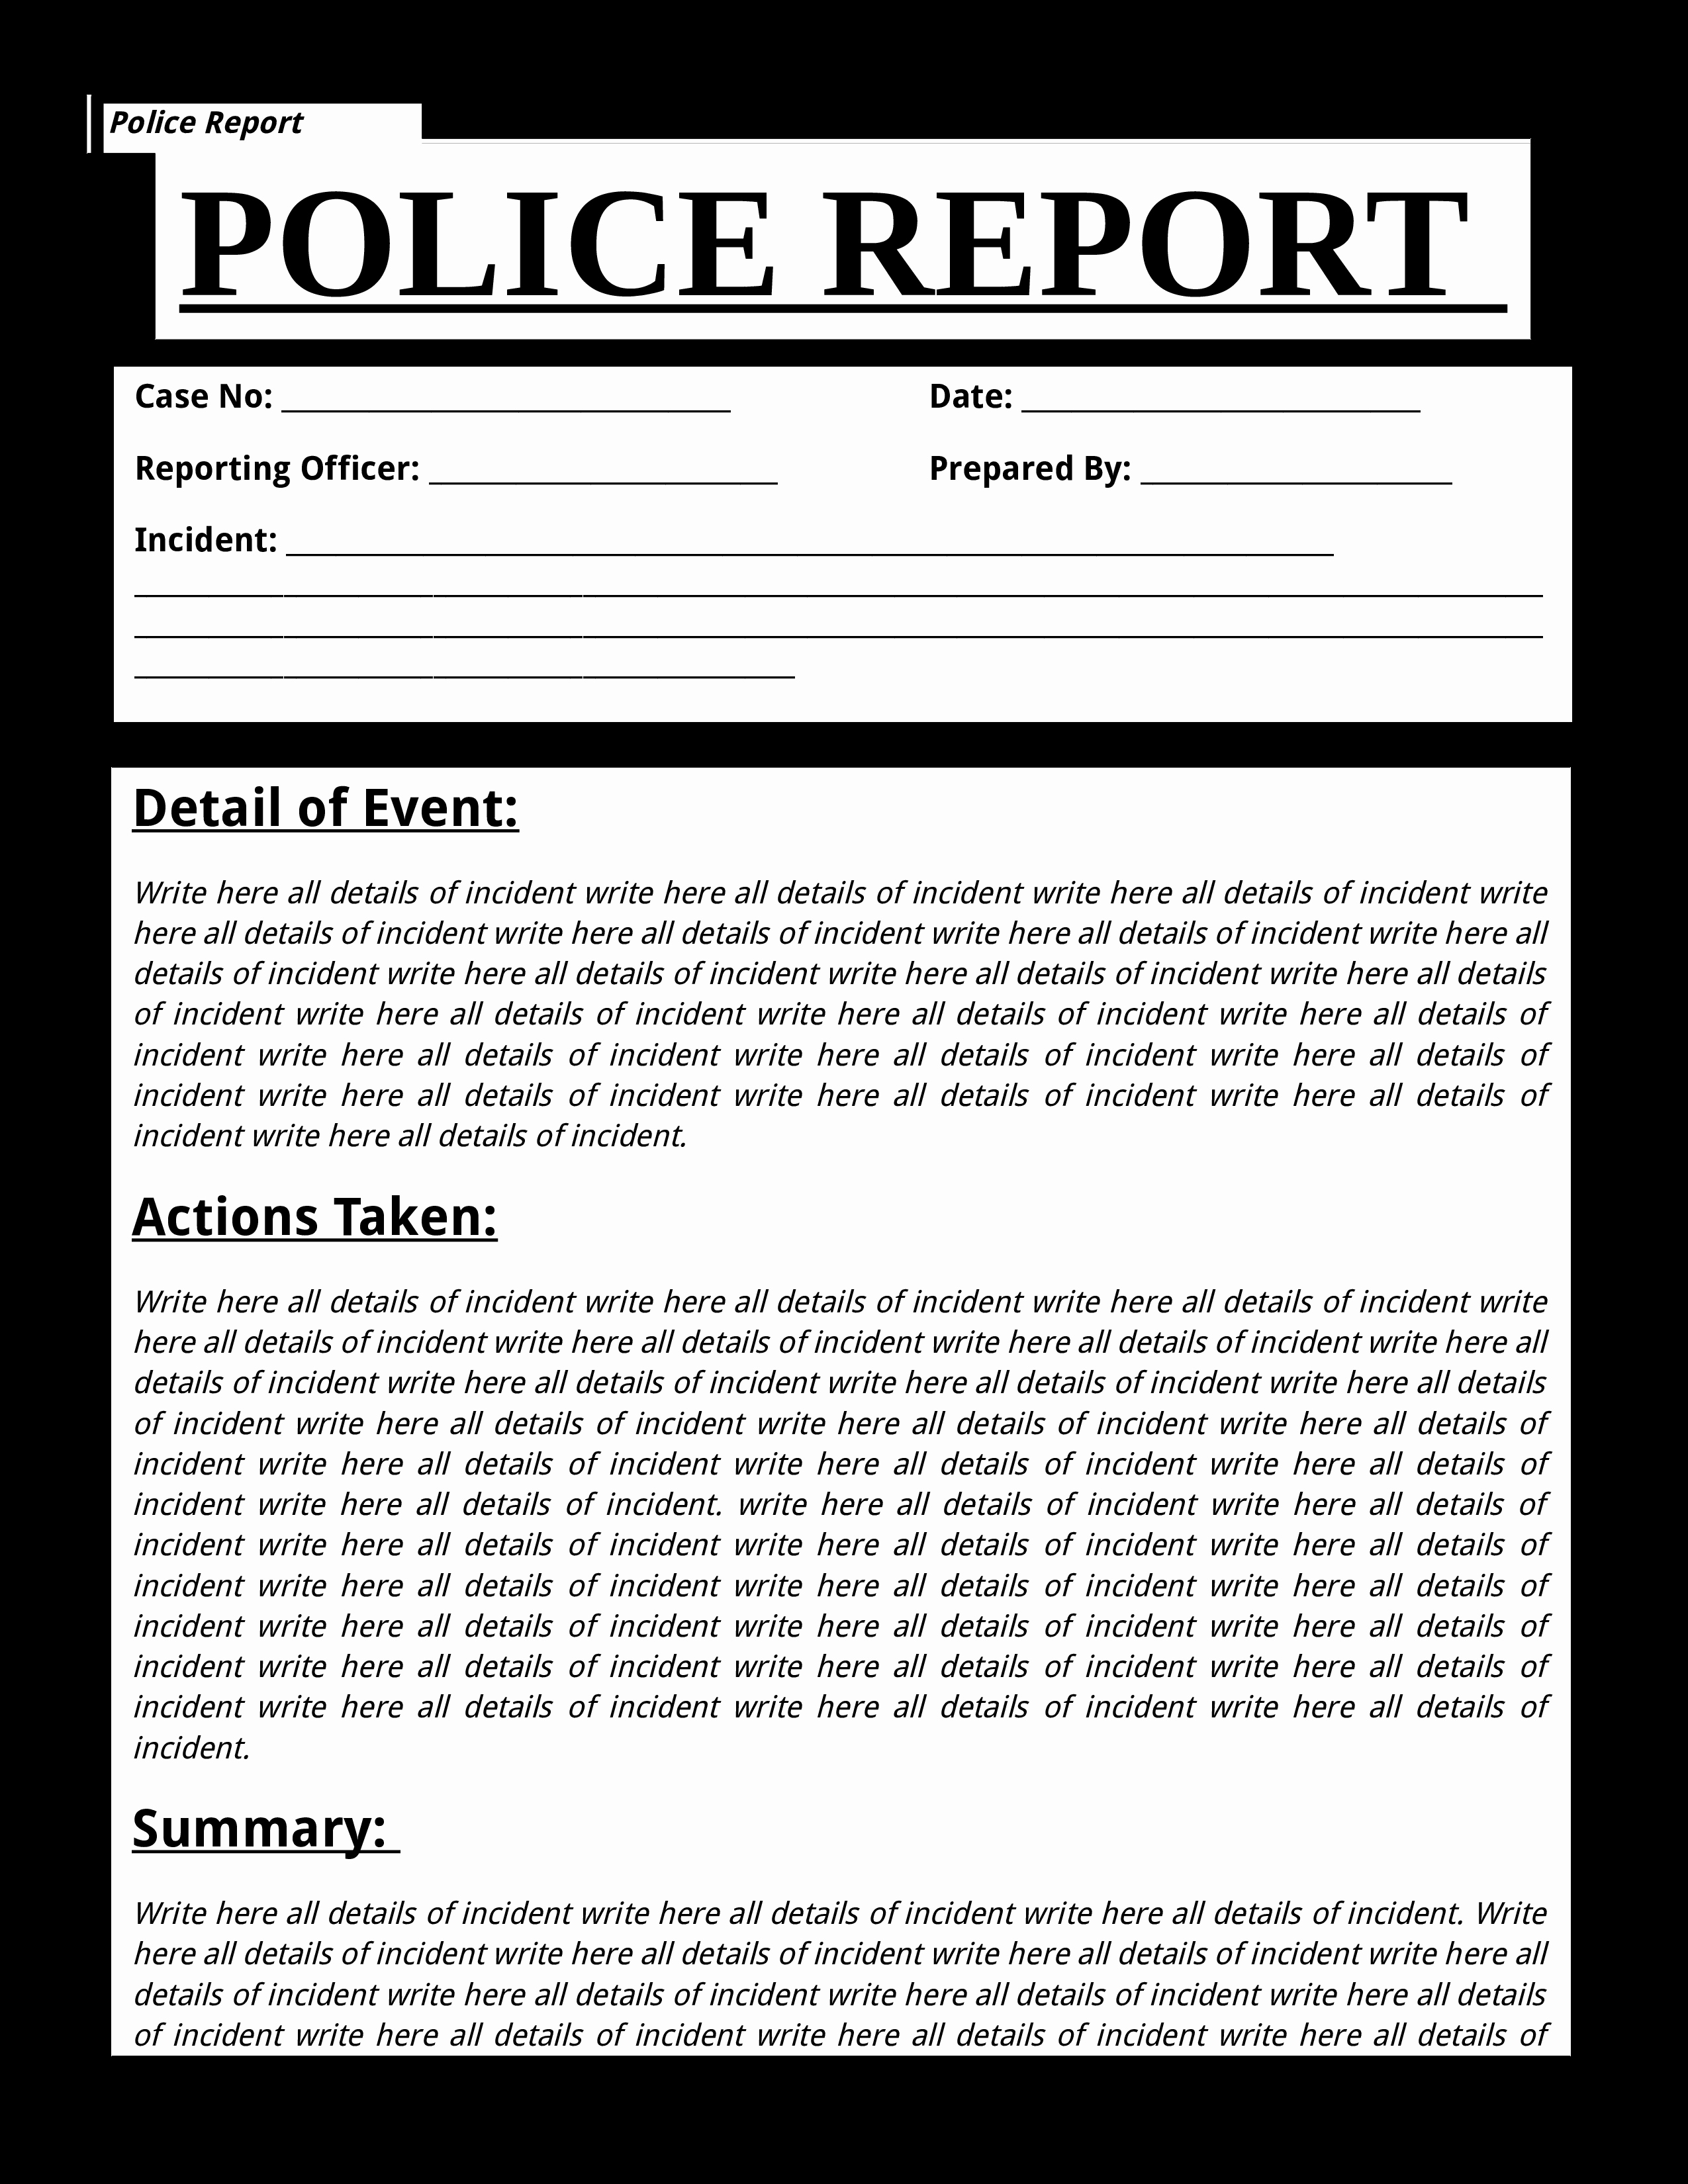 Police Report Template Pdf Elegant Free Police Report Template